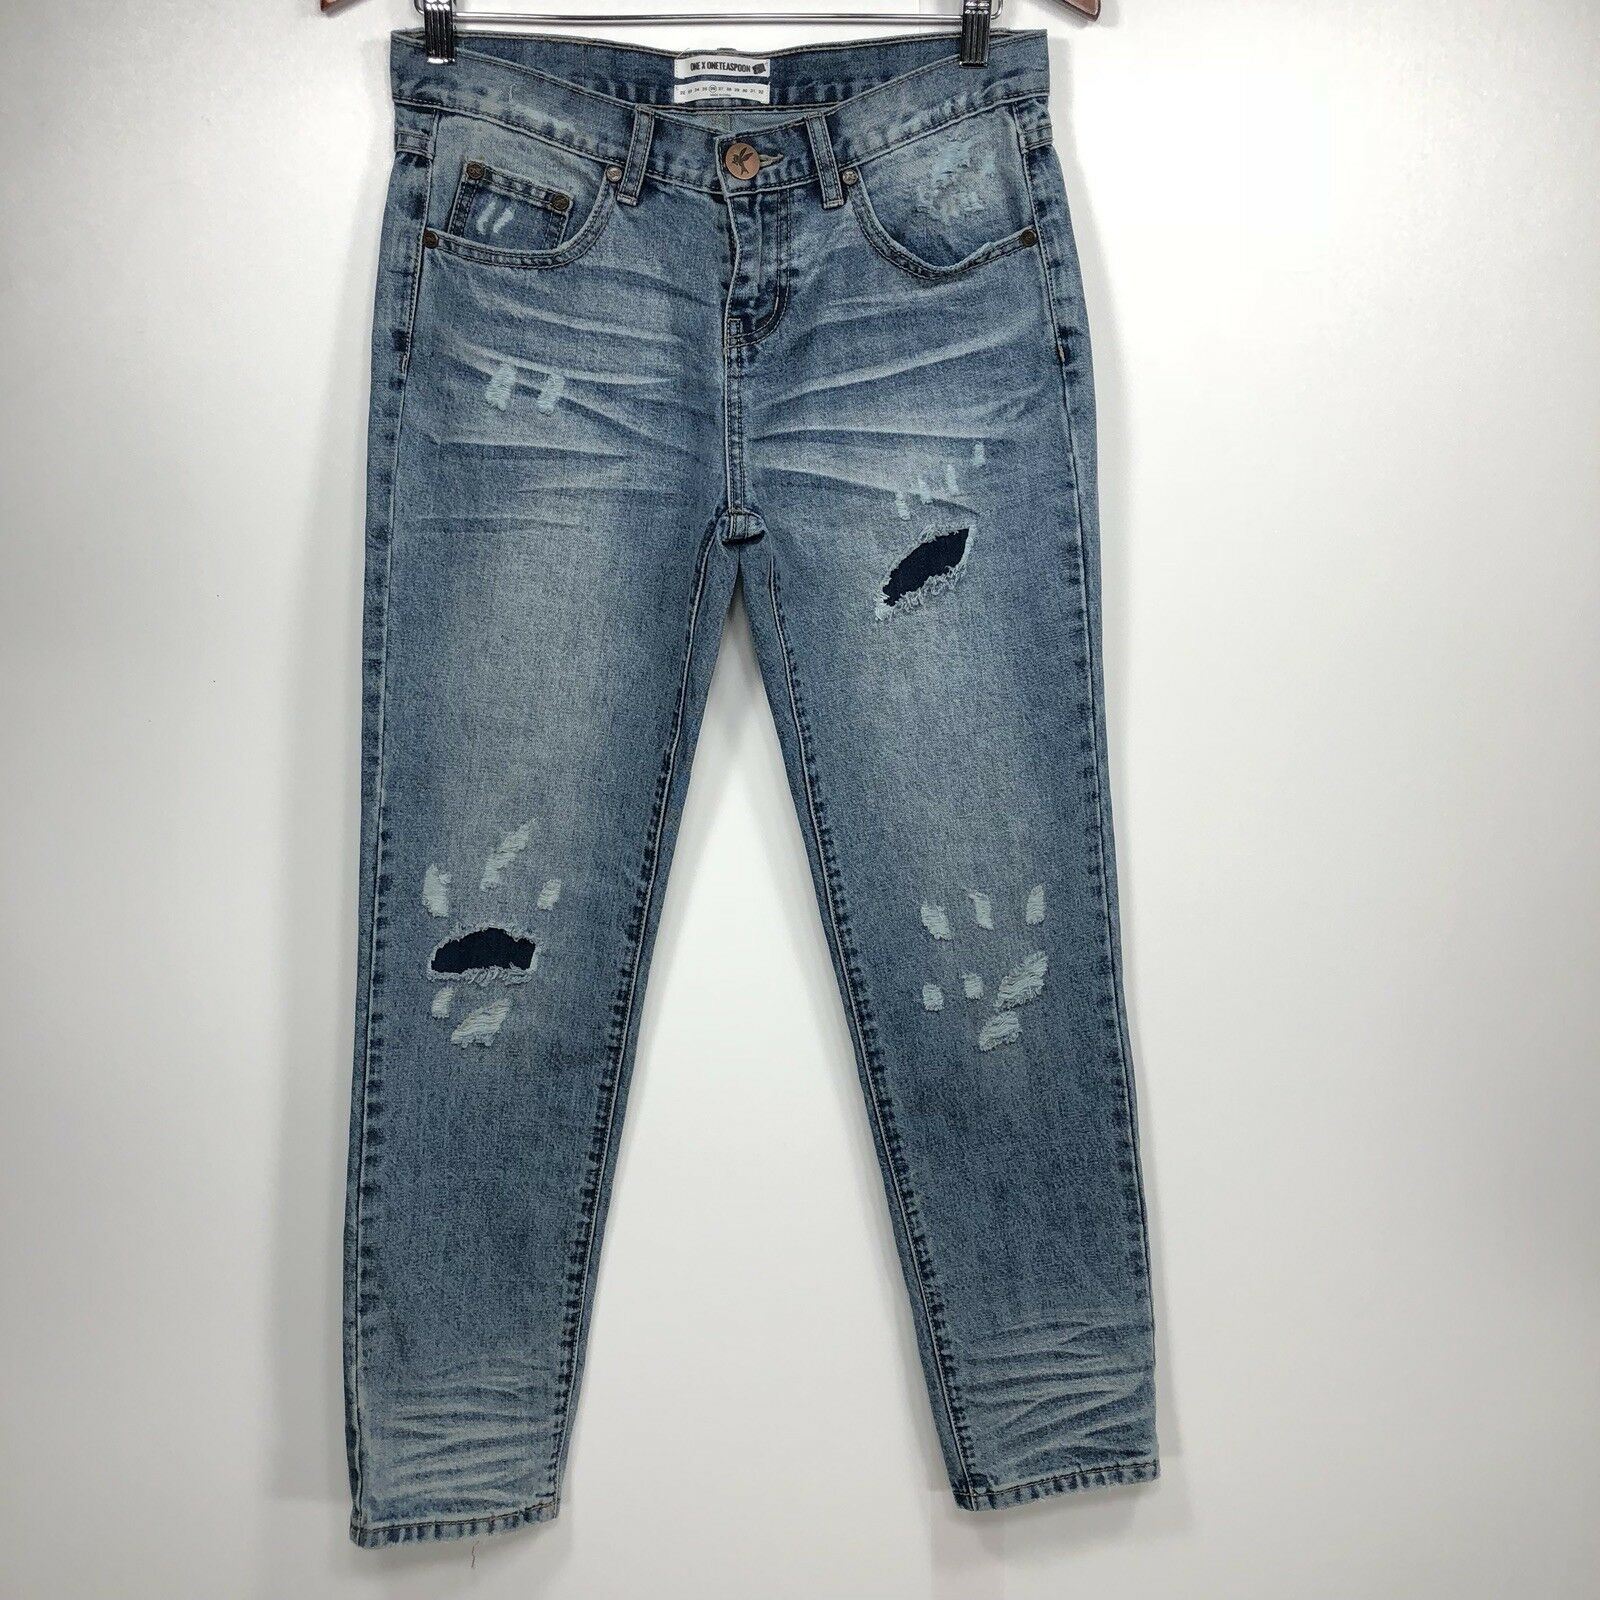 One Teaspoon Awesome Baggies Jeans 26 Womens Distressed Relaxed Leg bluee B39